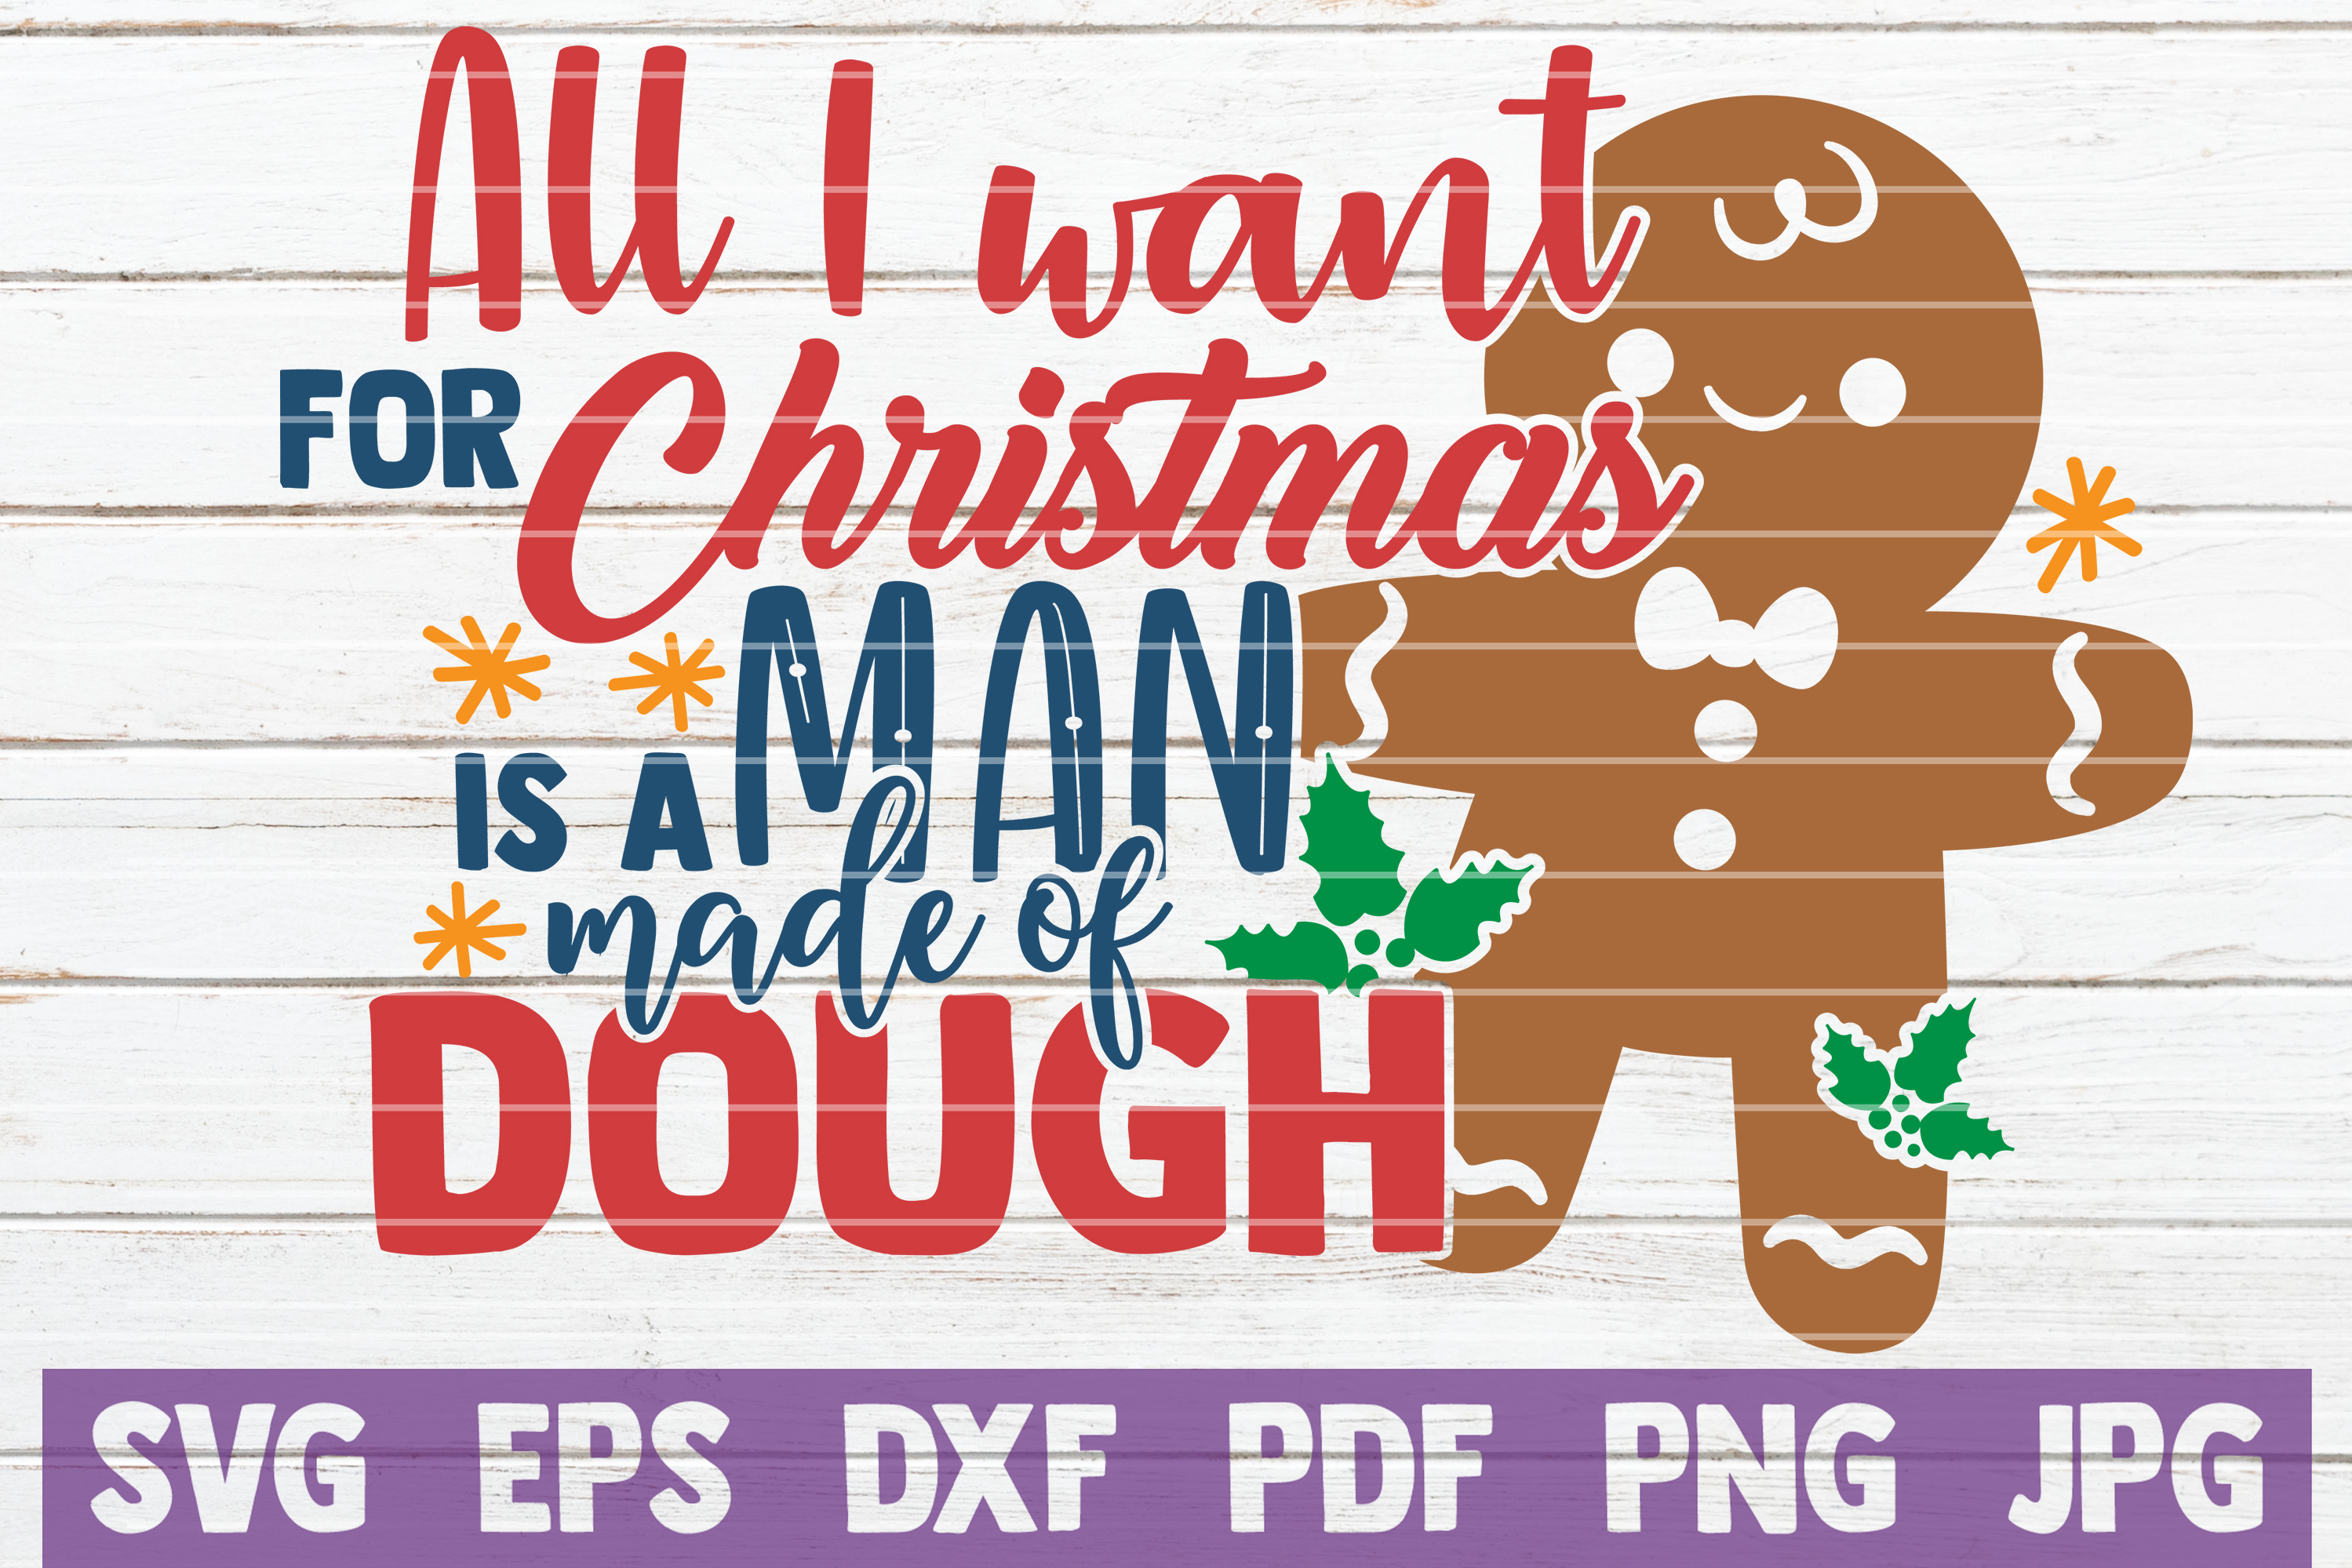 All I Want For Christmas Is A Man Made Of Dough SVG Cut File example image 1